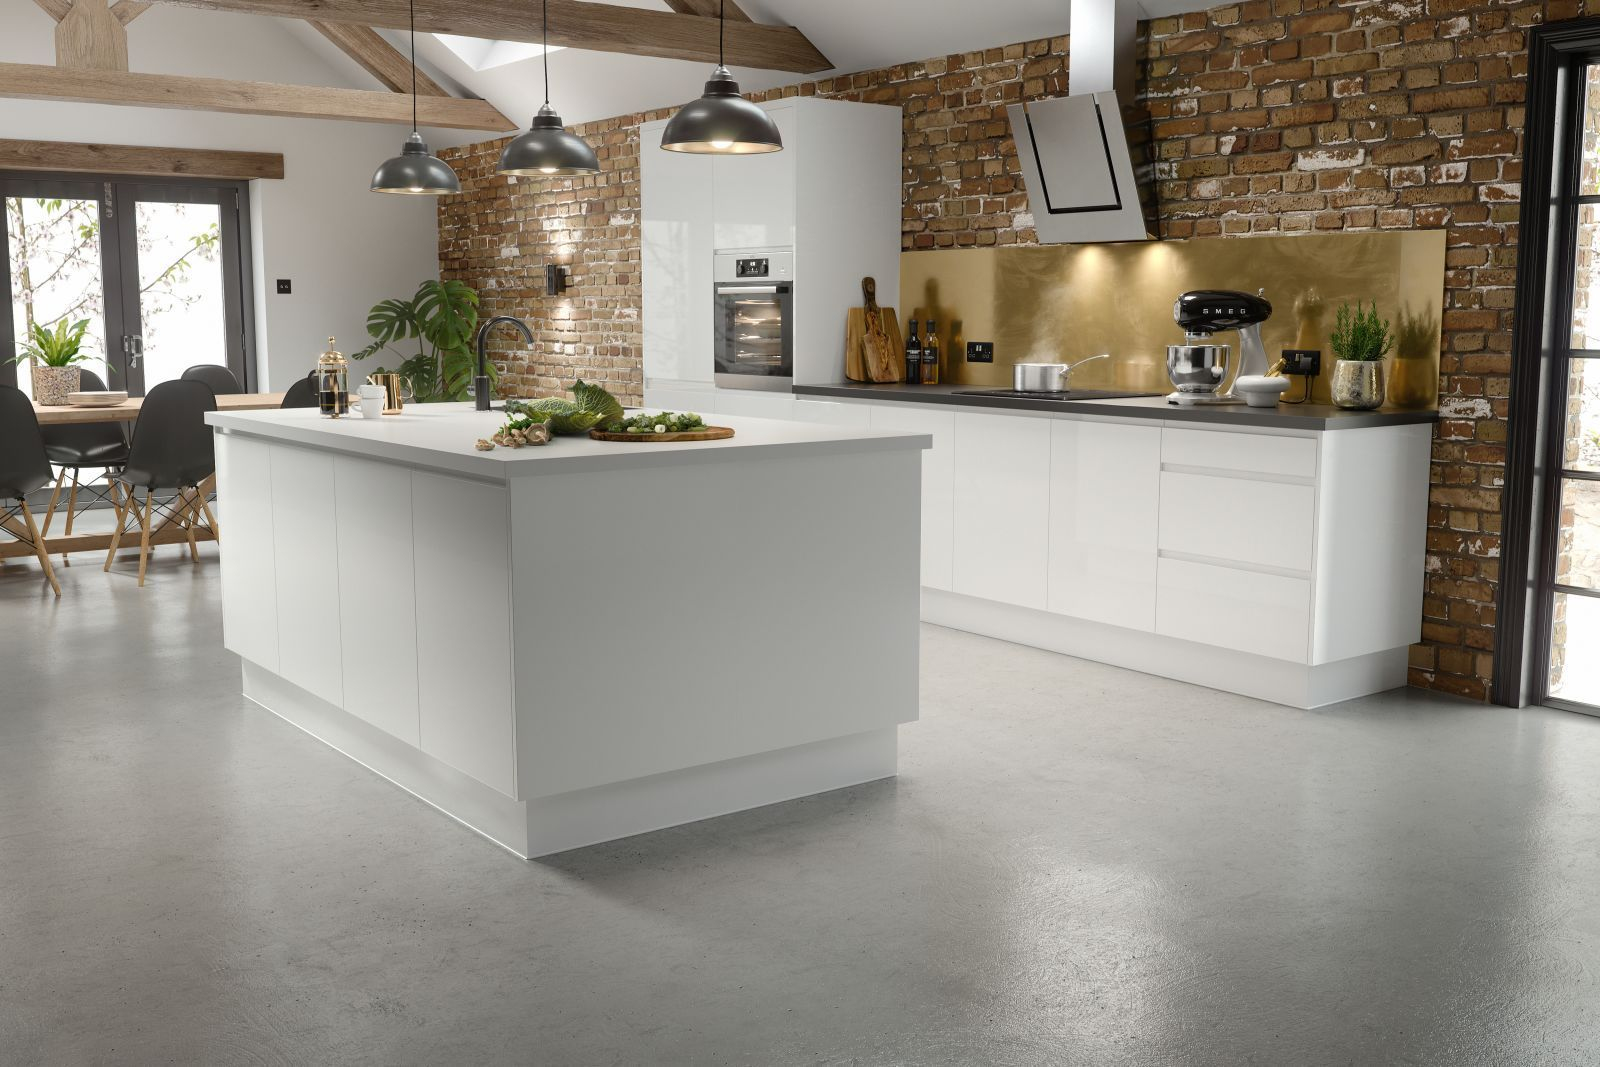 j pull kitchen in gloss white wren kitchen white gloss kitchen handleless kitchen on j kitchen id=12548